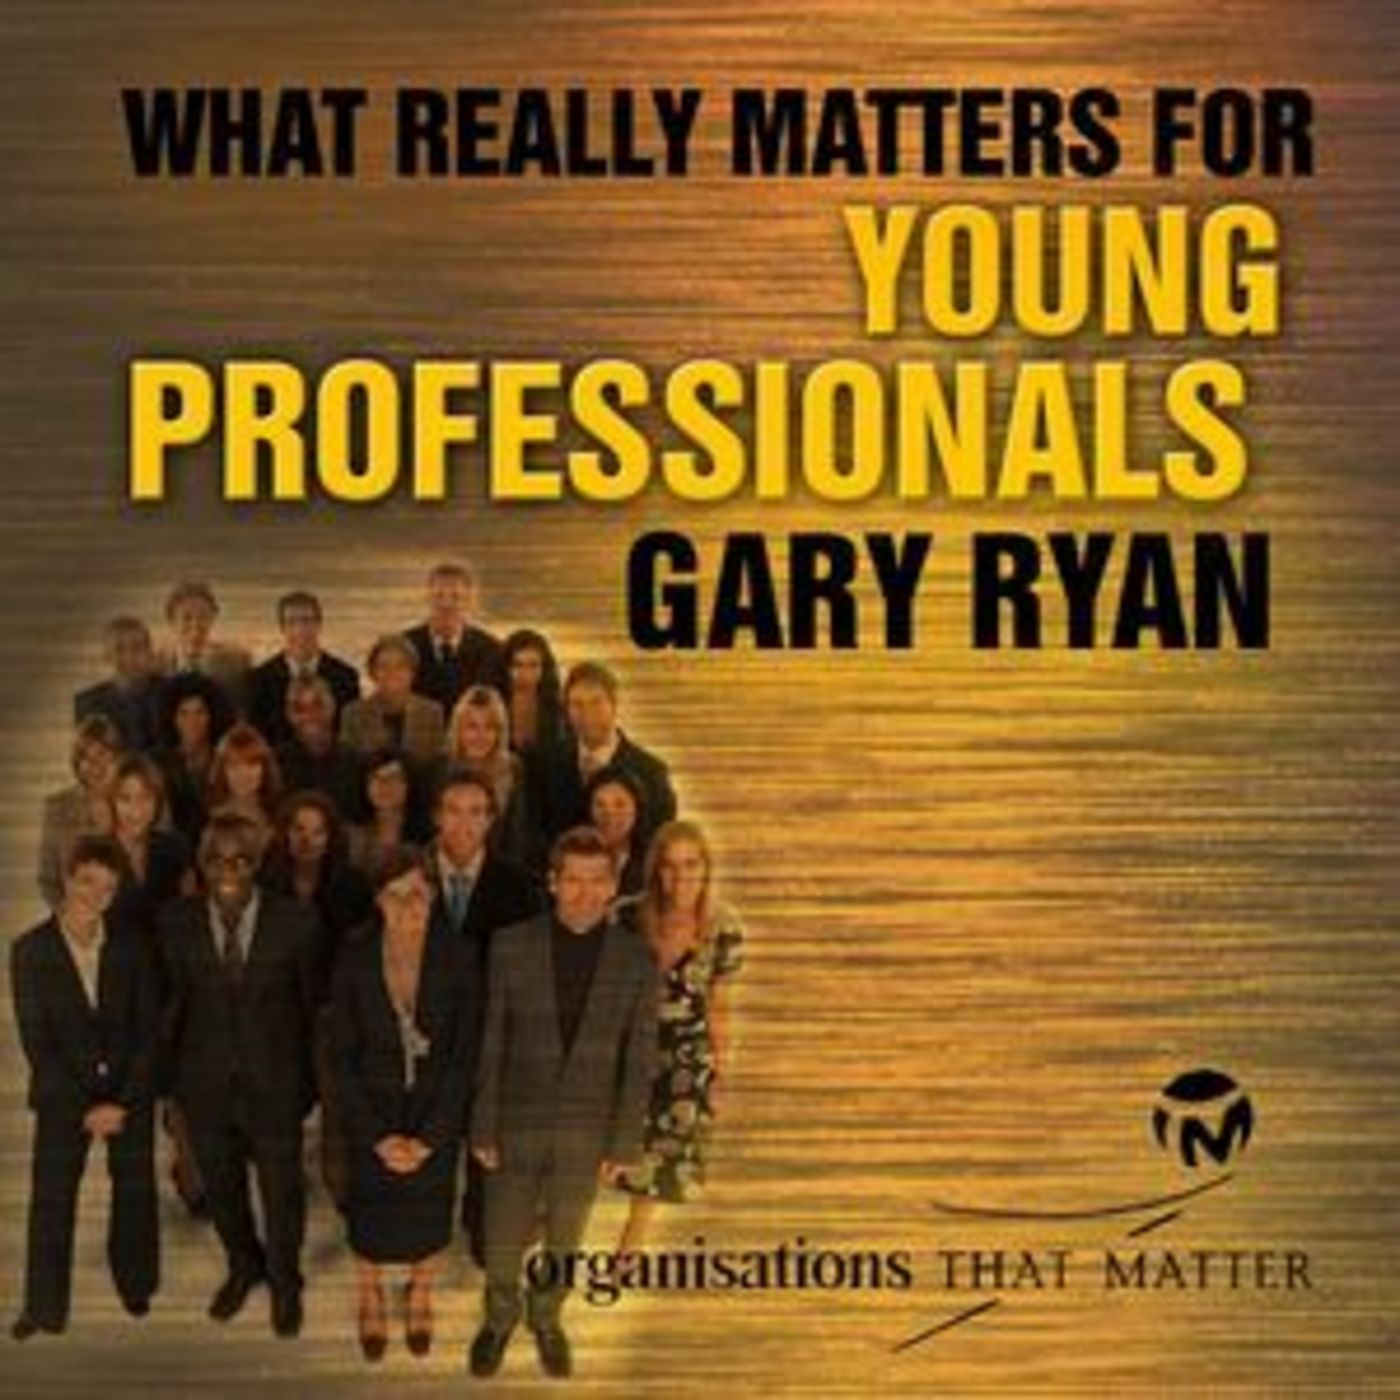 <![CDATA[Gary Ryan What Really Matters For Young Professionals]]>